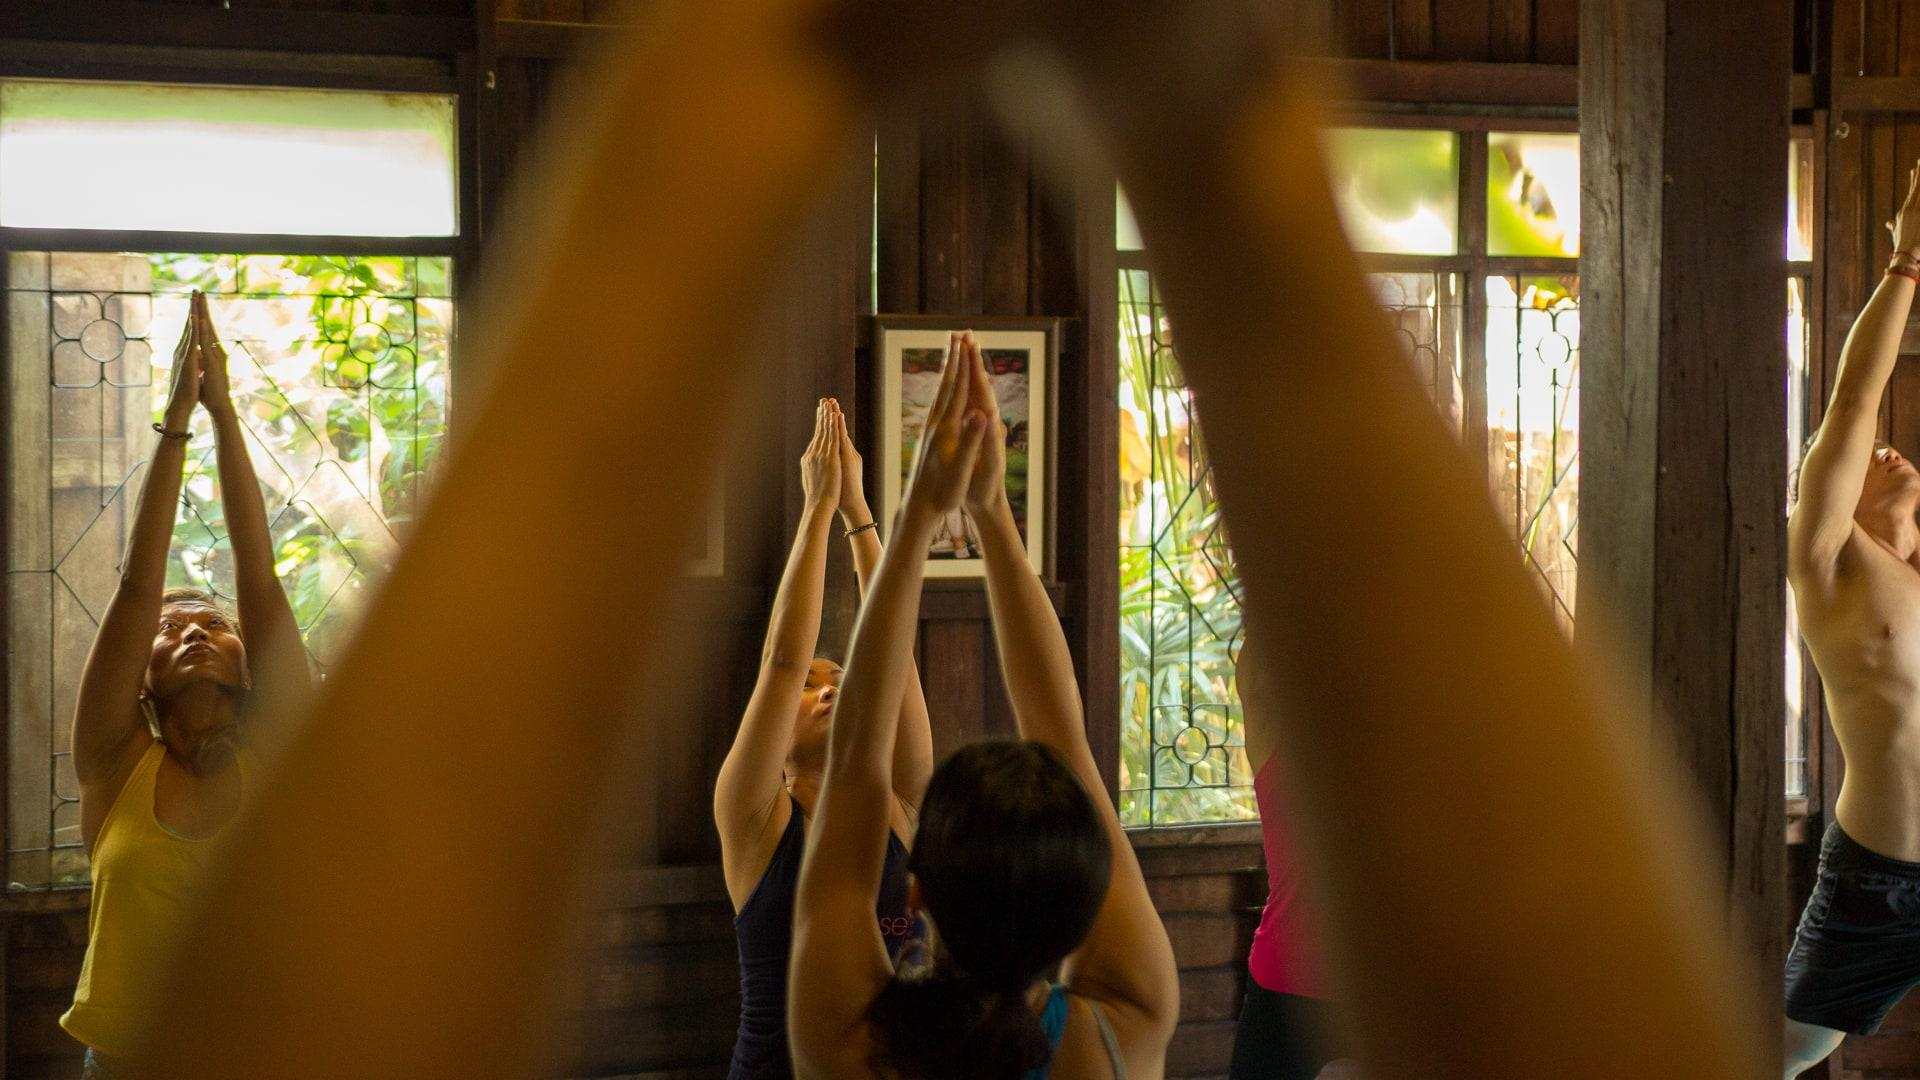 Morning yoga class at Wild Rose Yoga Studio Chiang Mai Thailand Old City.